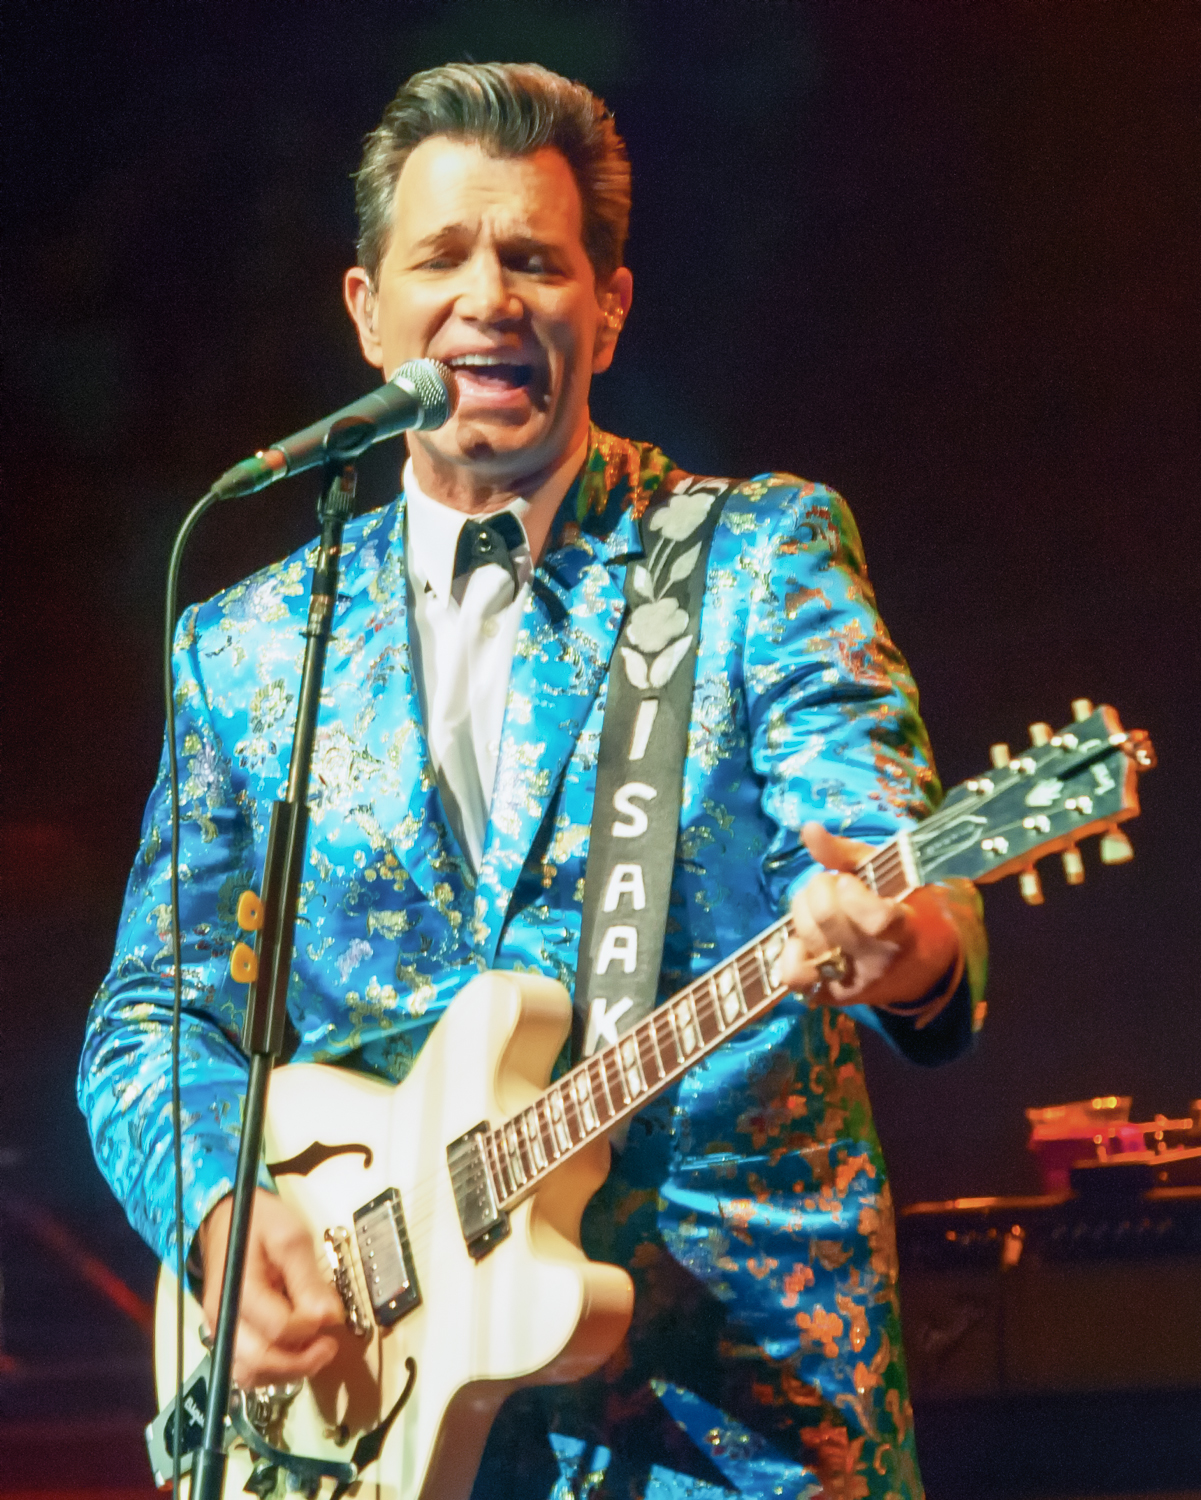 Chris isaak at the montreal international jazz festival 2013